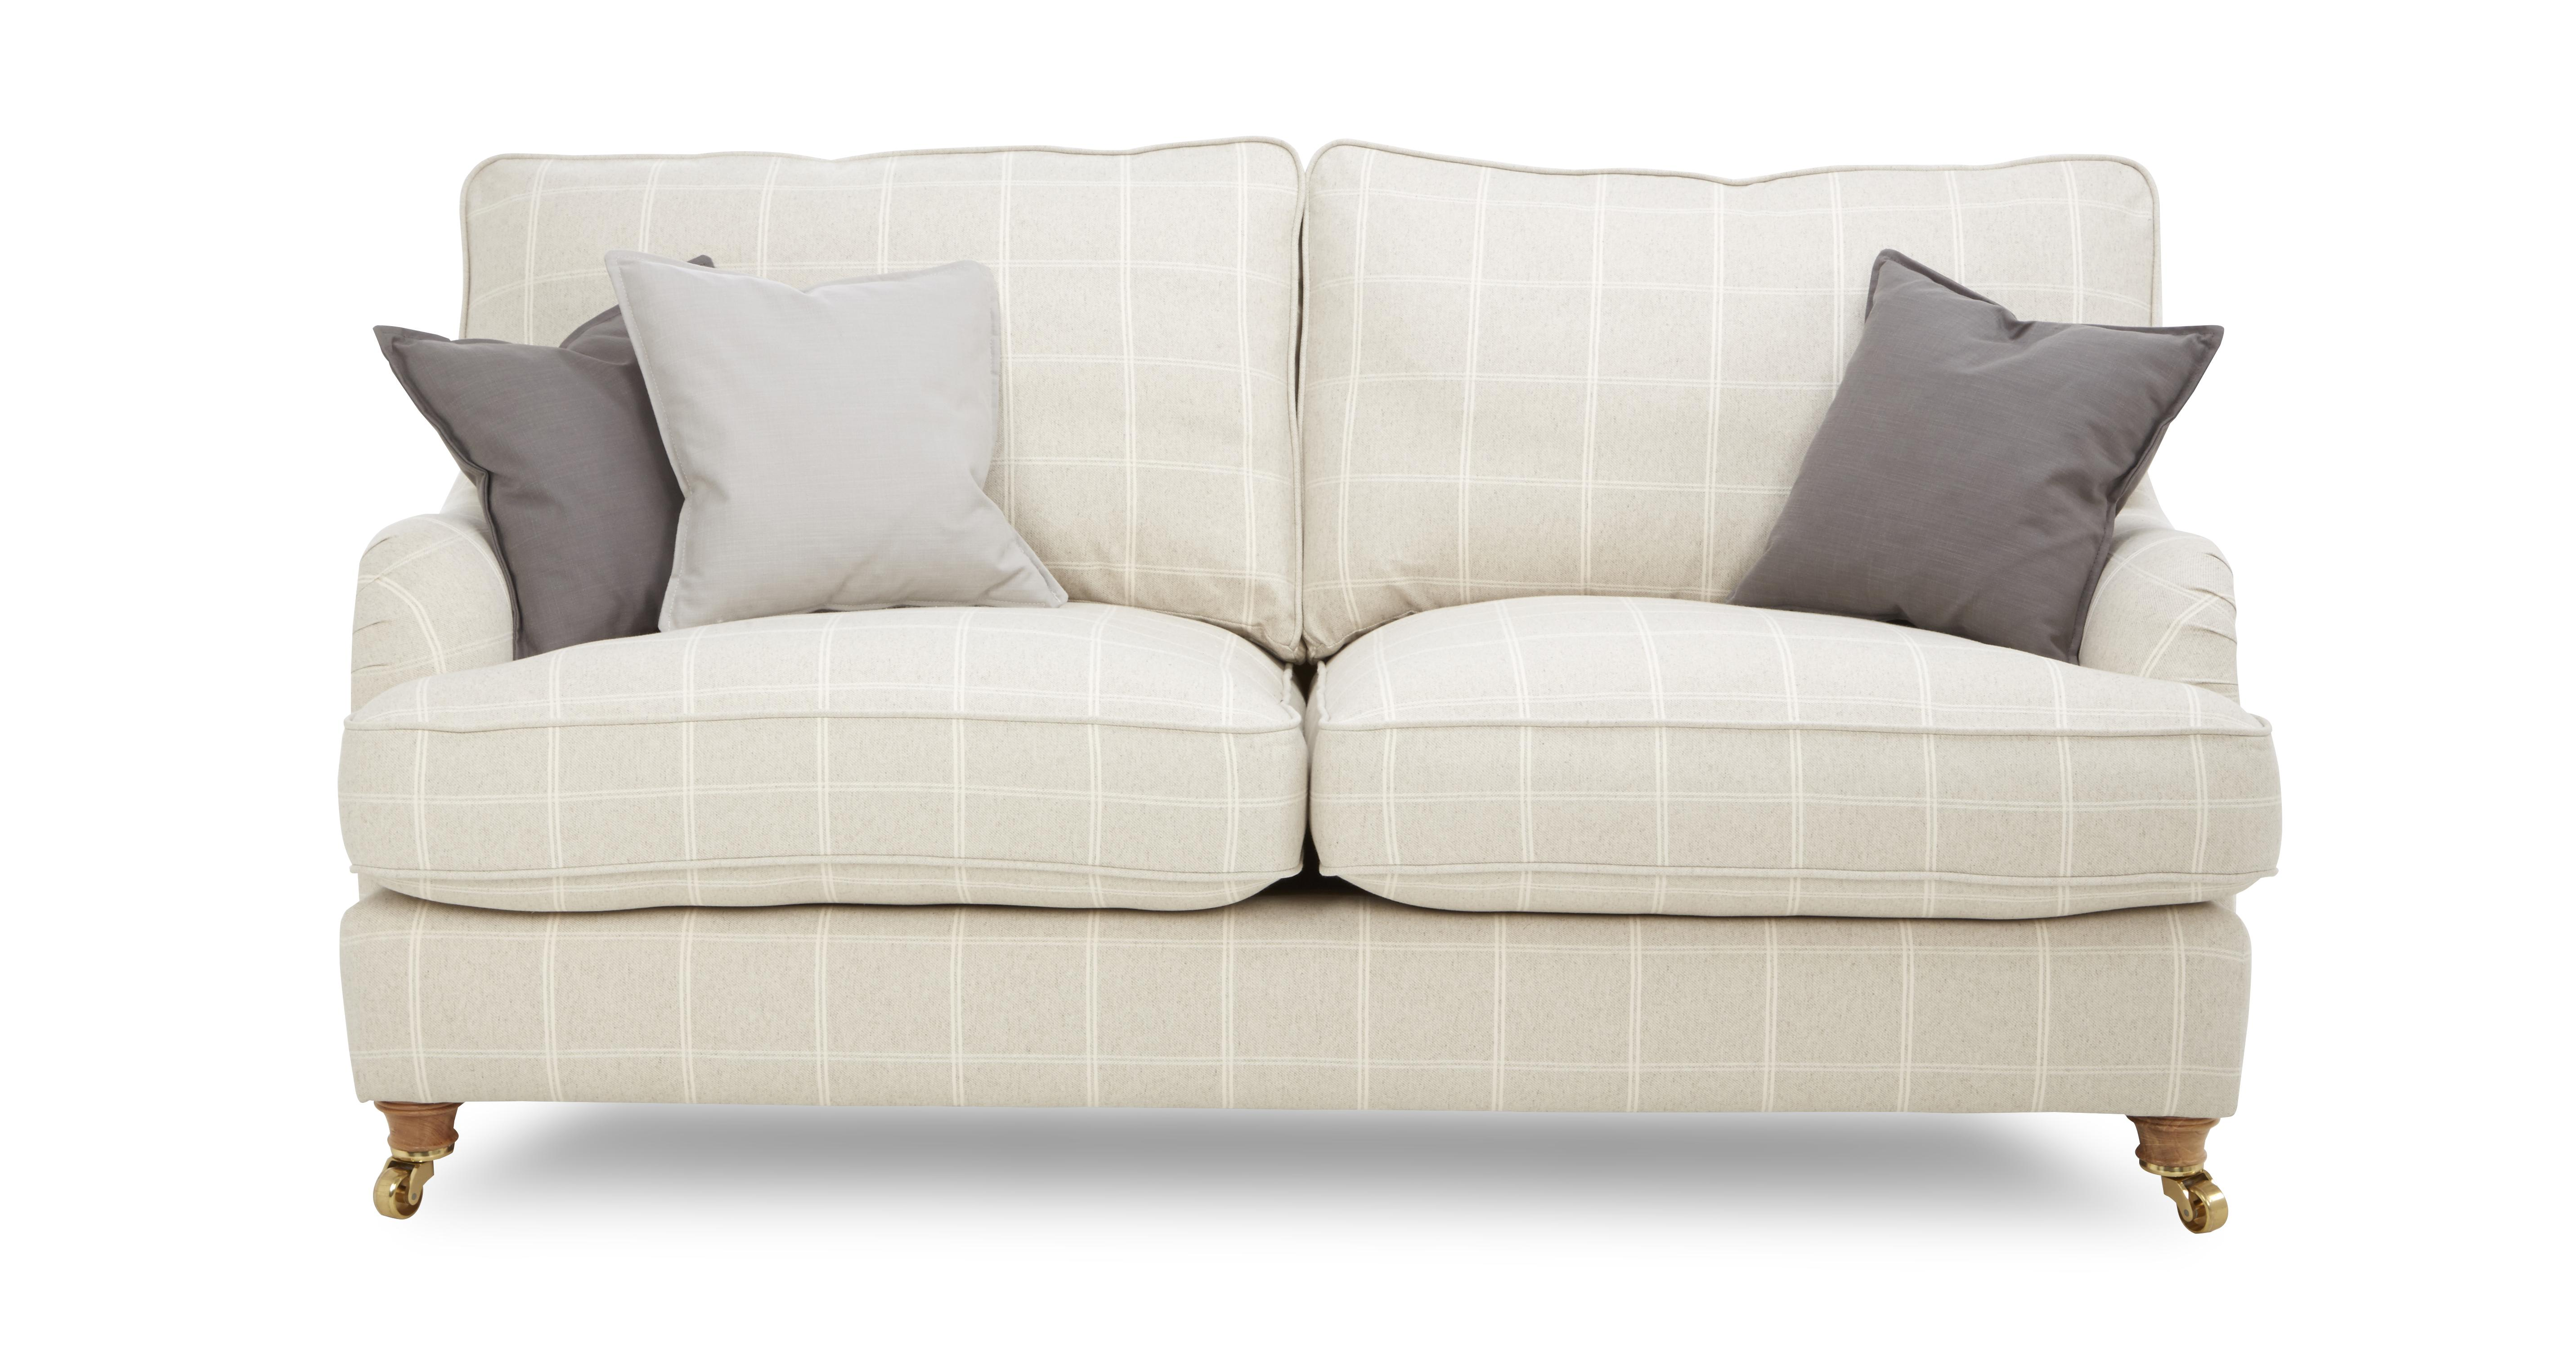 Classic And Traditional Sofas Dfs ~ Cream Leather Chesterfield Sofa